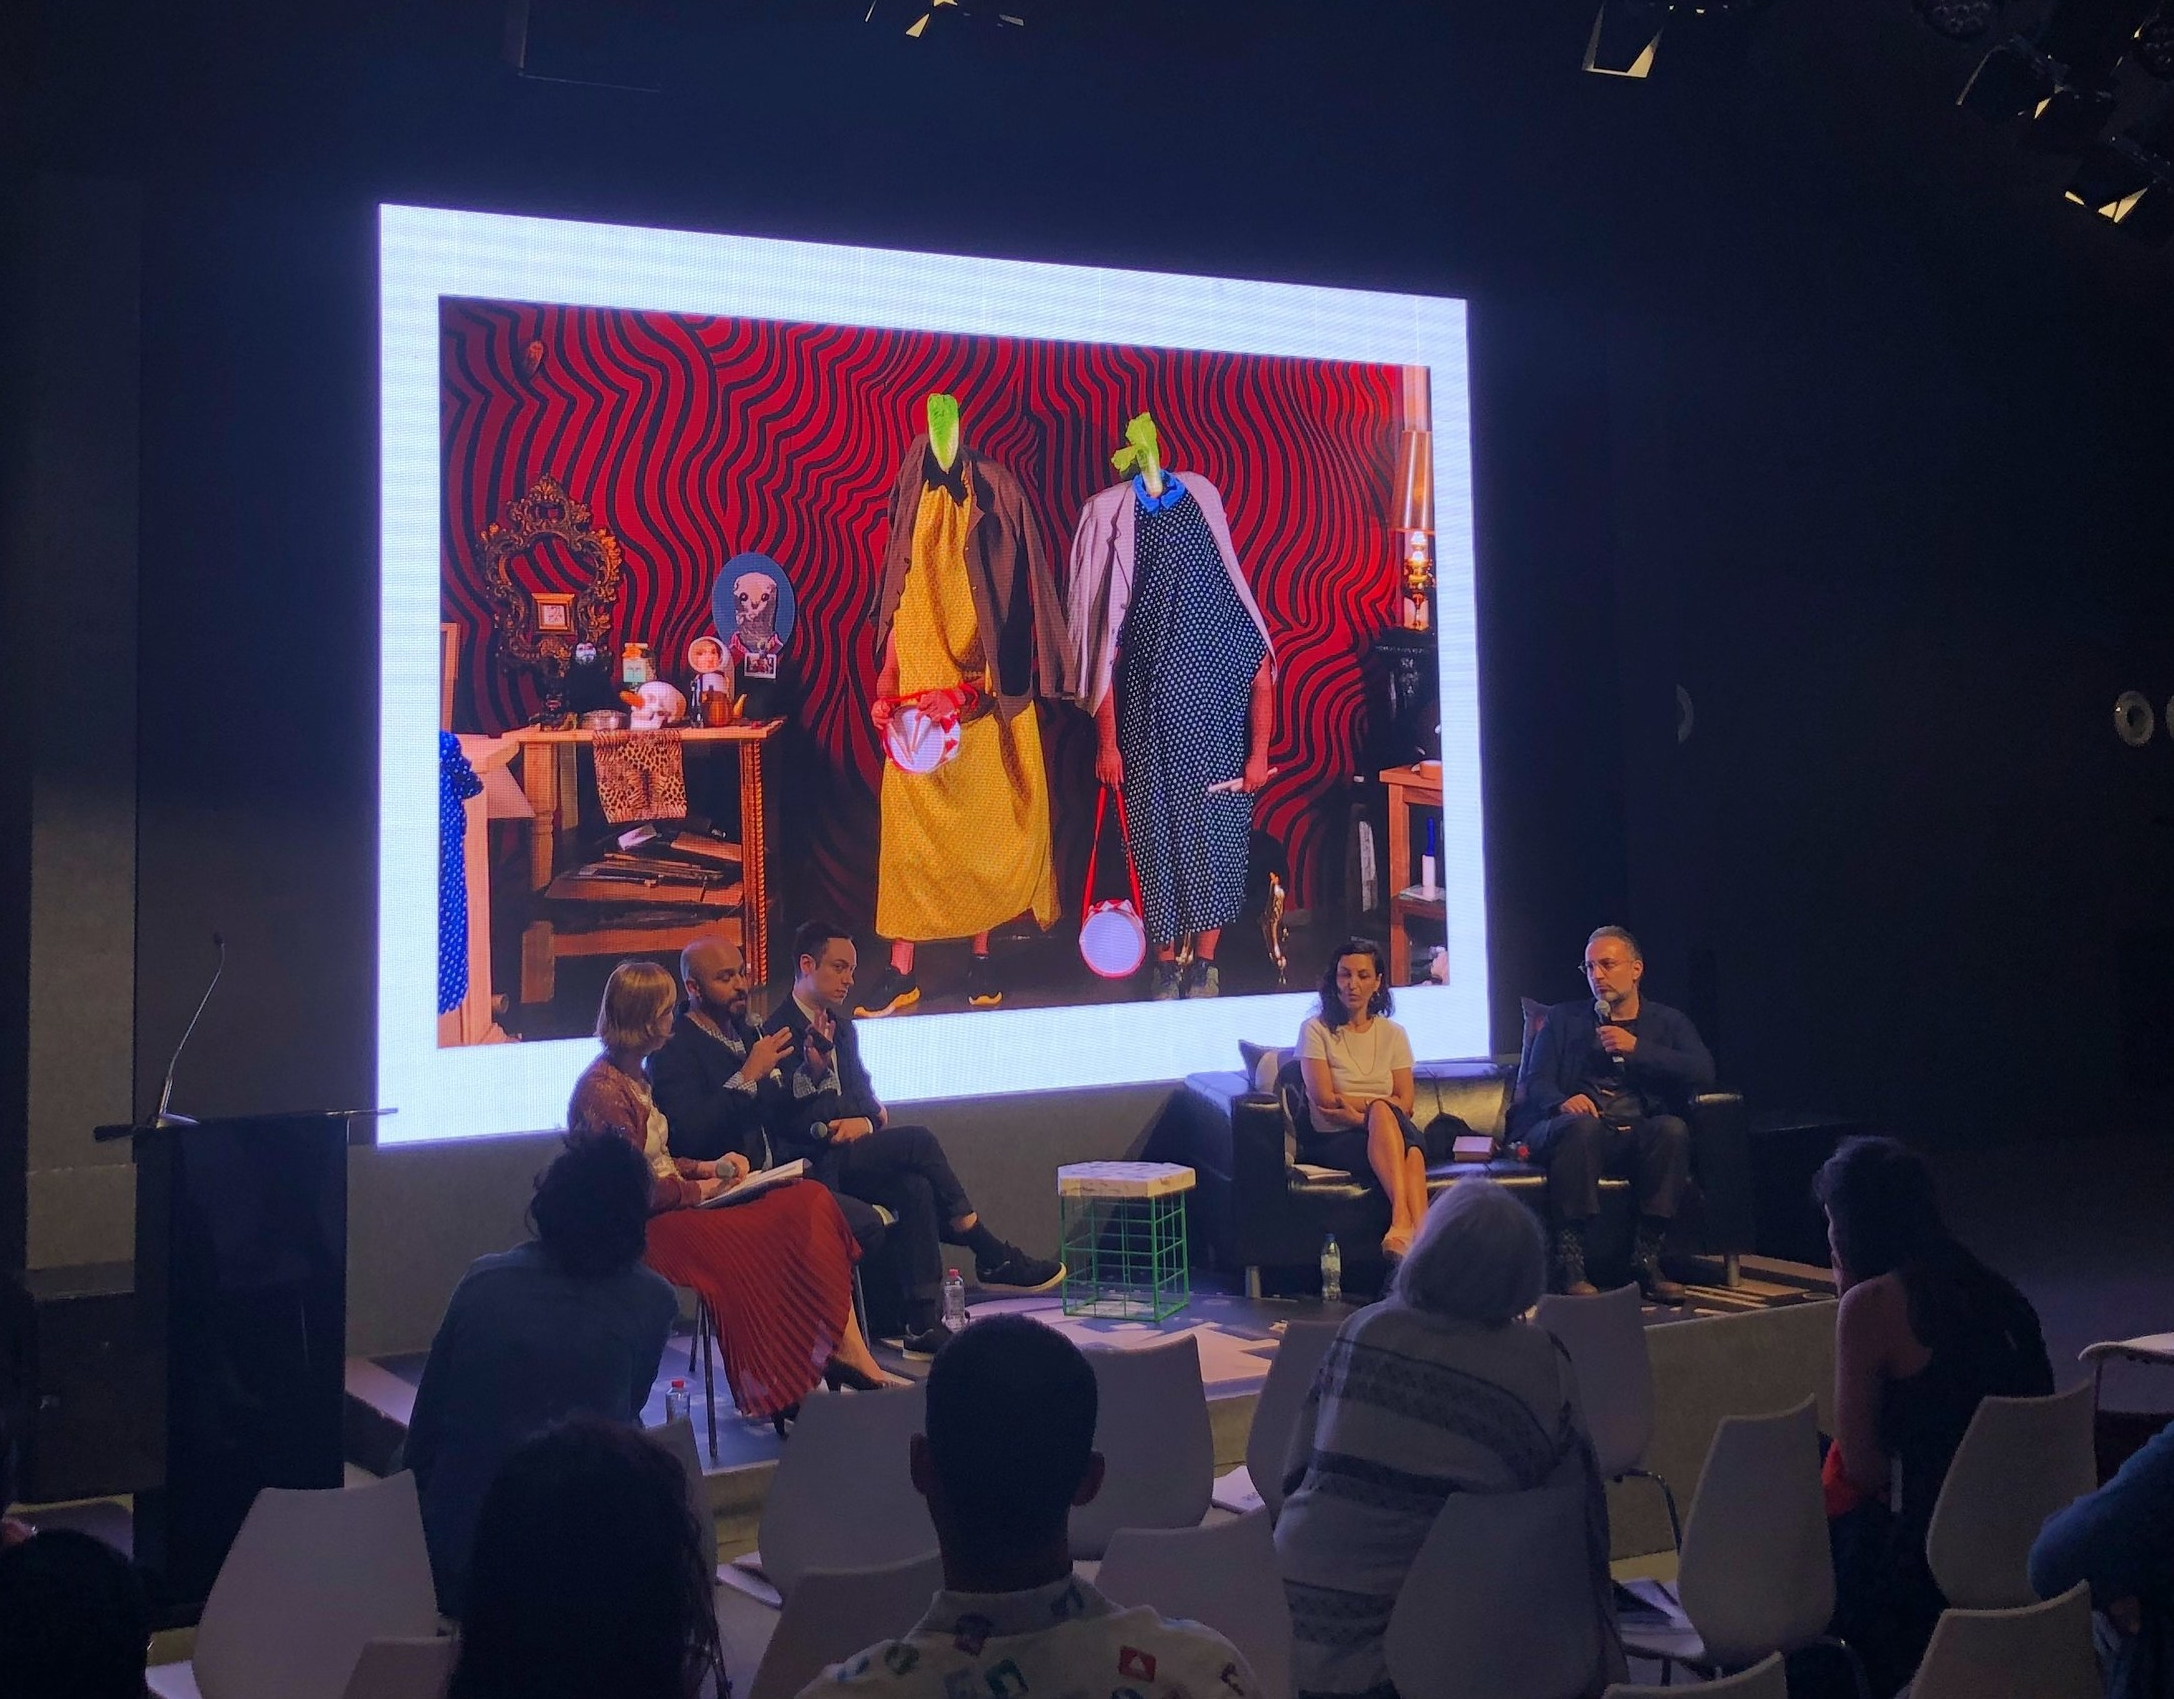 Ramin and Rokni Haerizadeh speaking at the Global Art Forum 2018 in a session titled I Am A Human Artist. Image taken by Anna Seaman